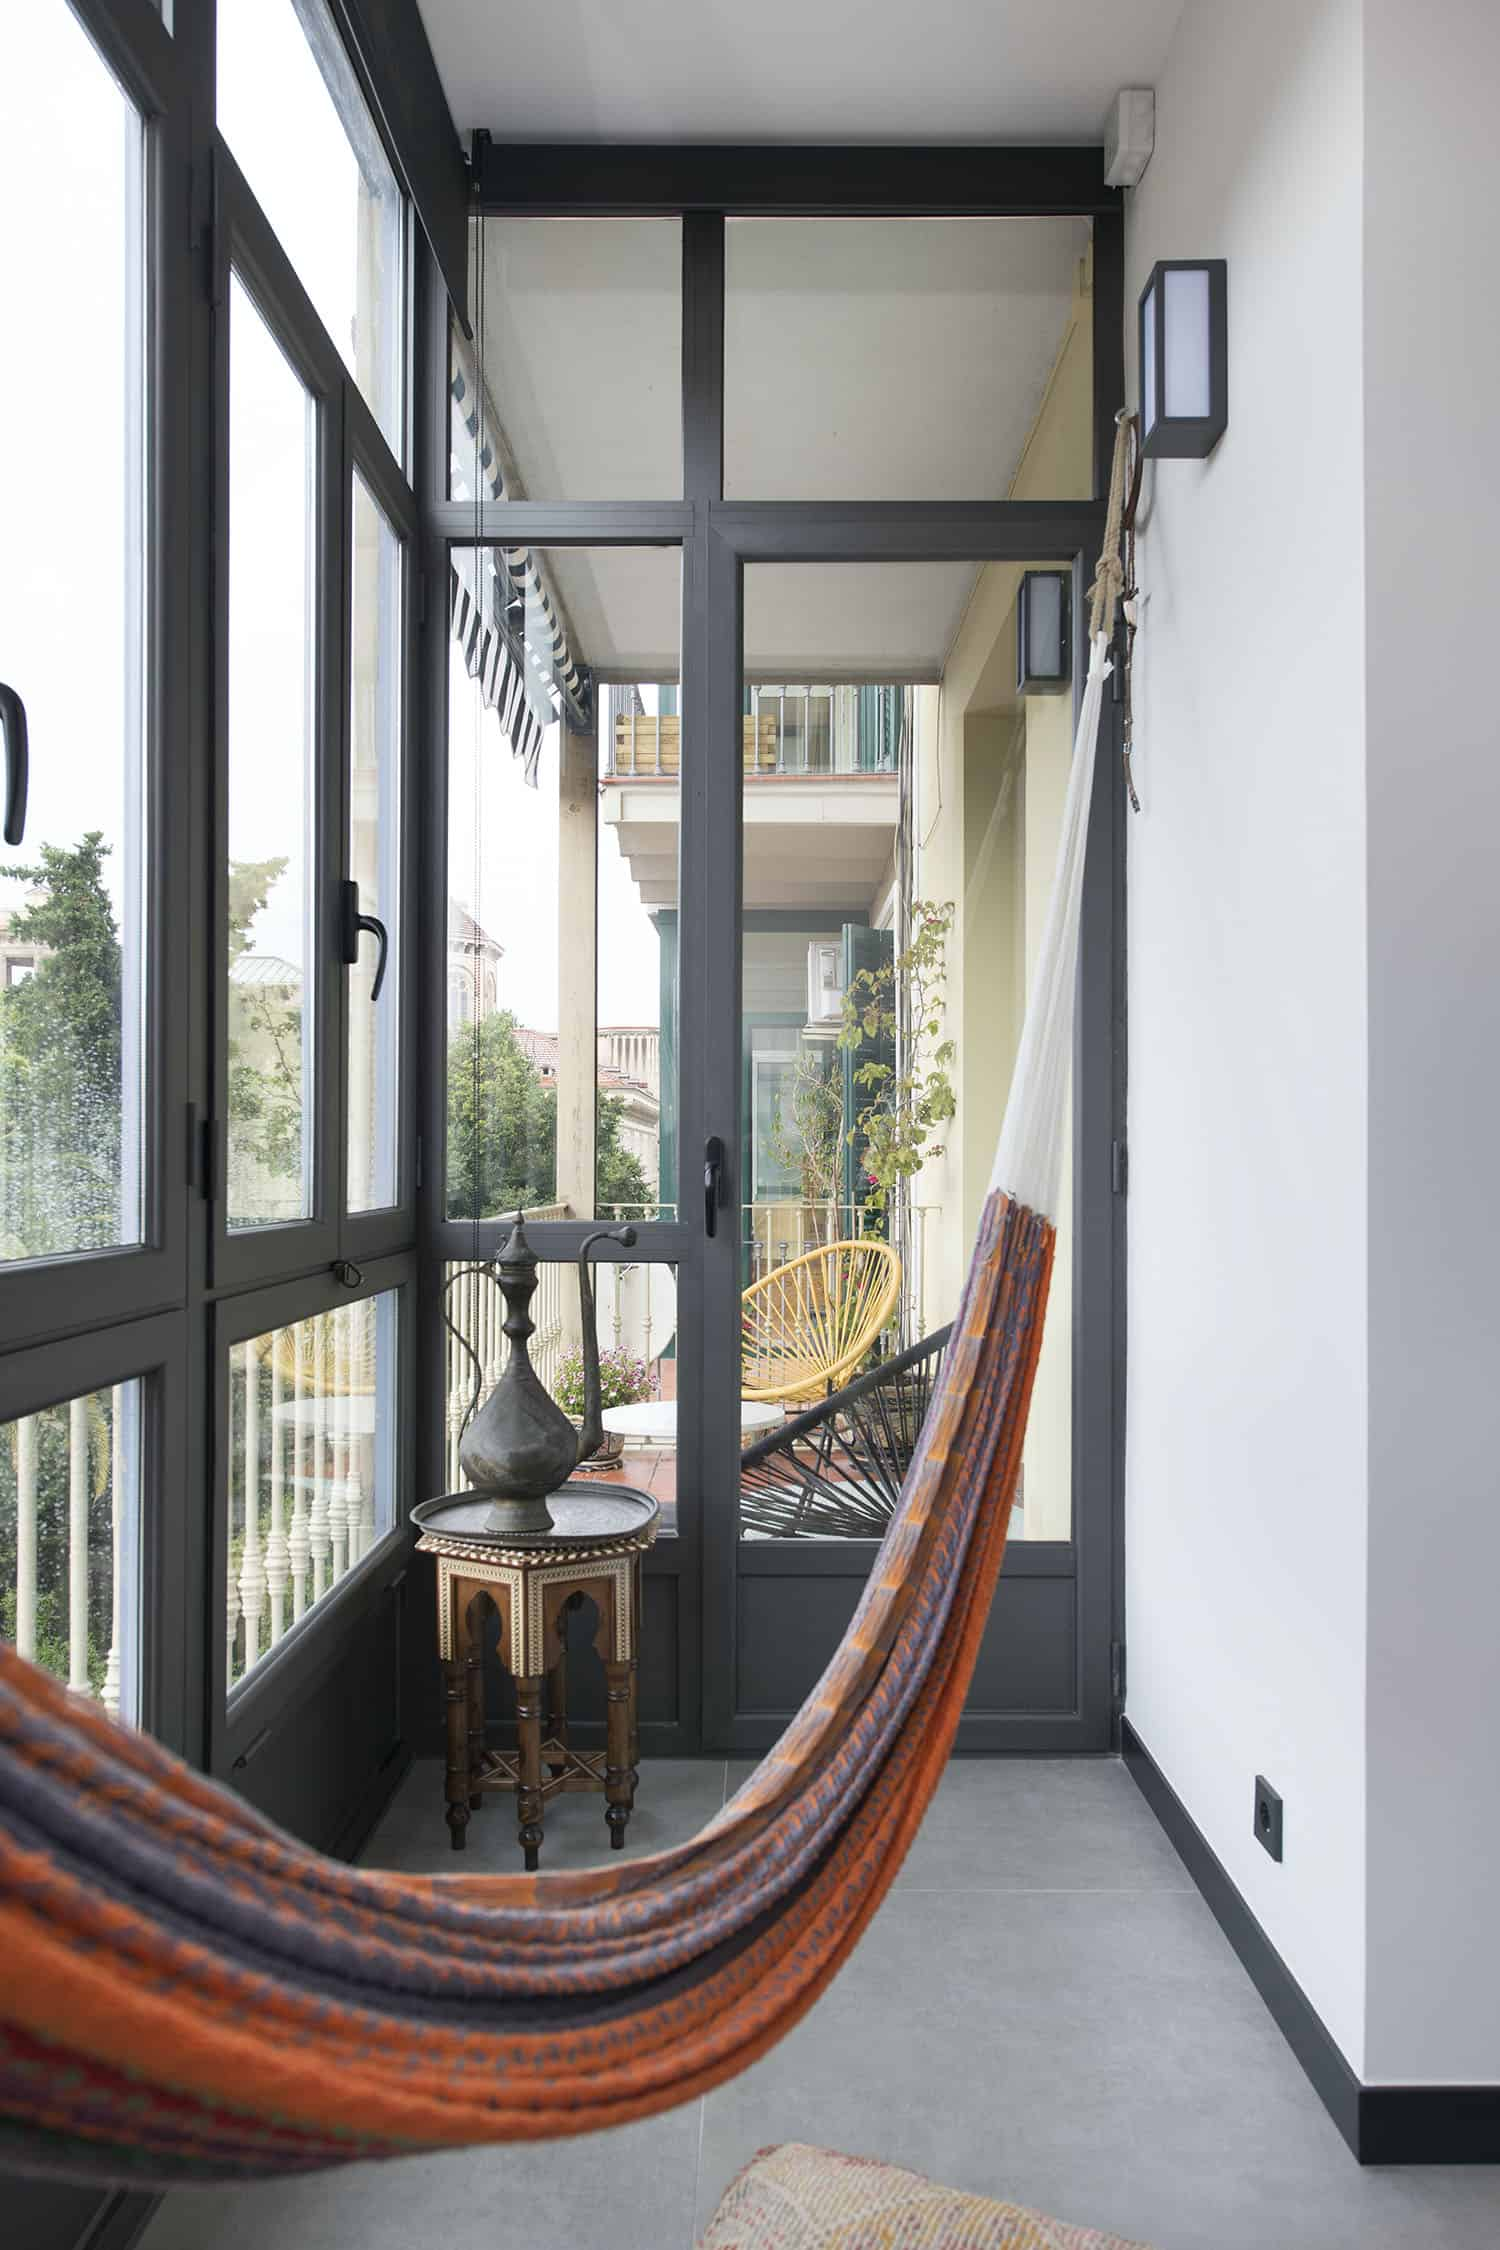 The balcony is glazed and is decorated in boho style, with a boho hammock, a boho table, a tray and a teapot